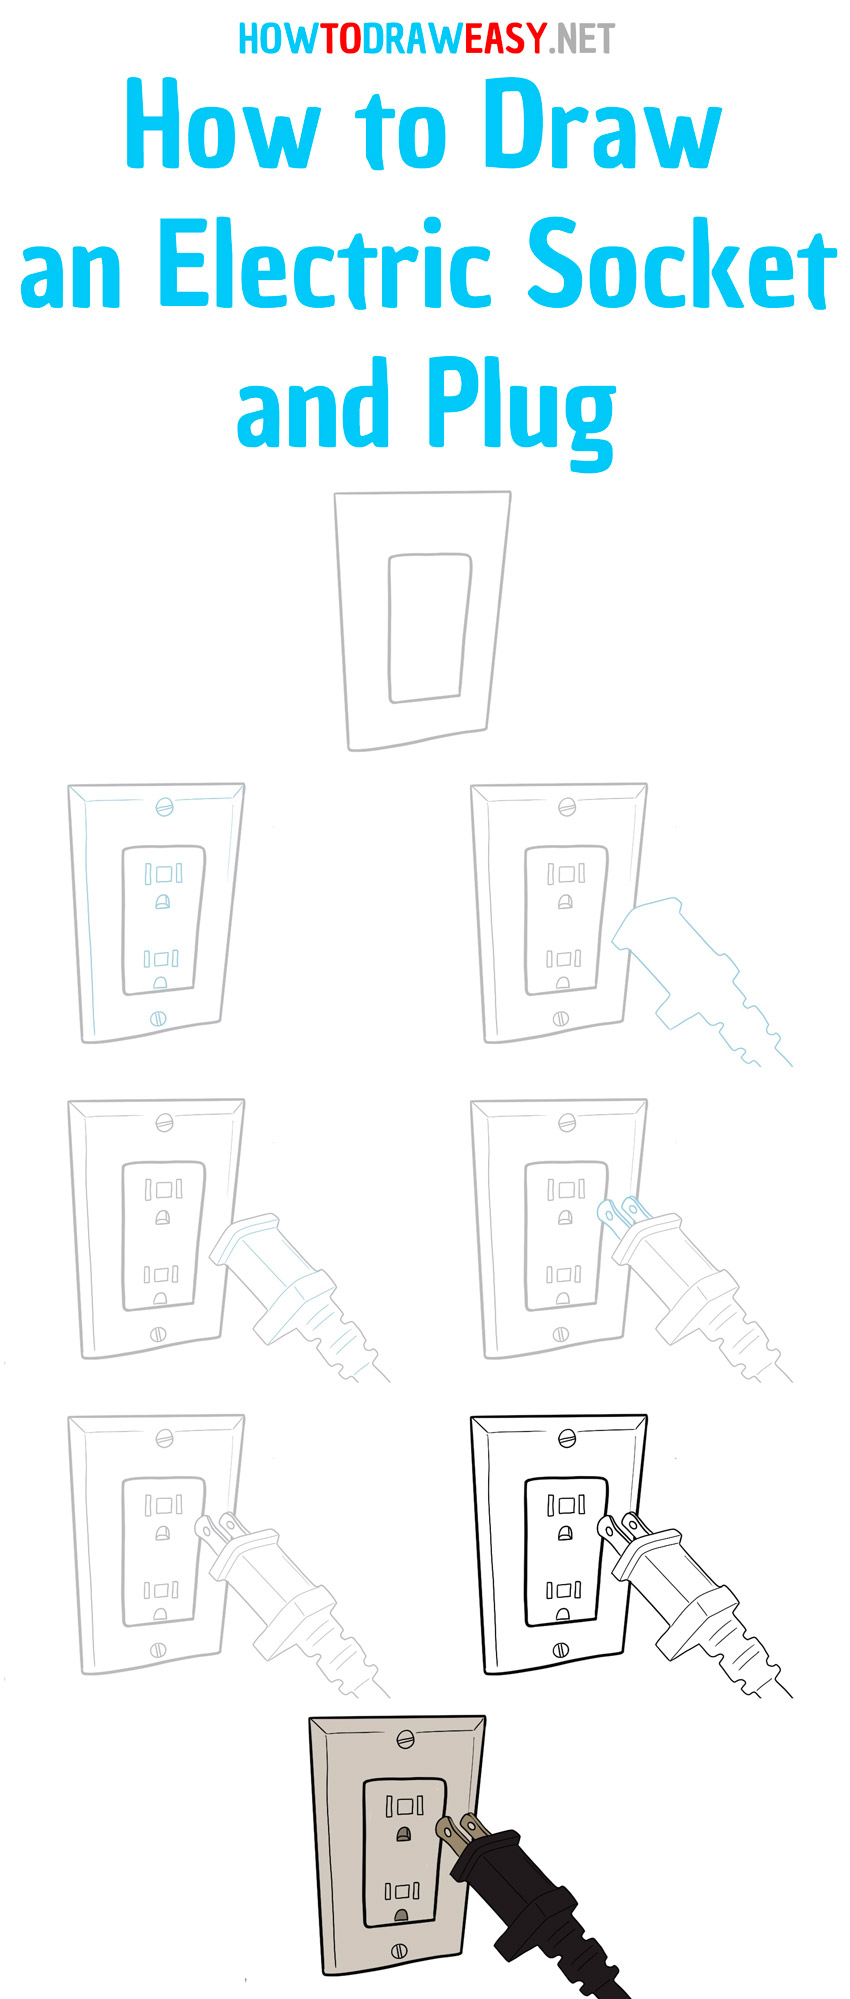 how to draw an electric socket and plug step by step